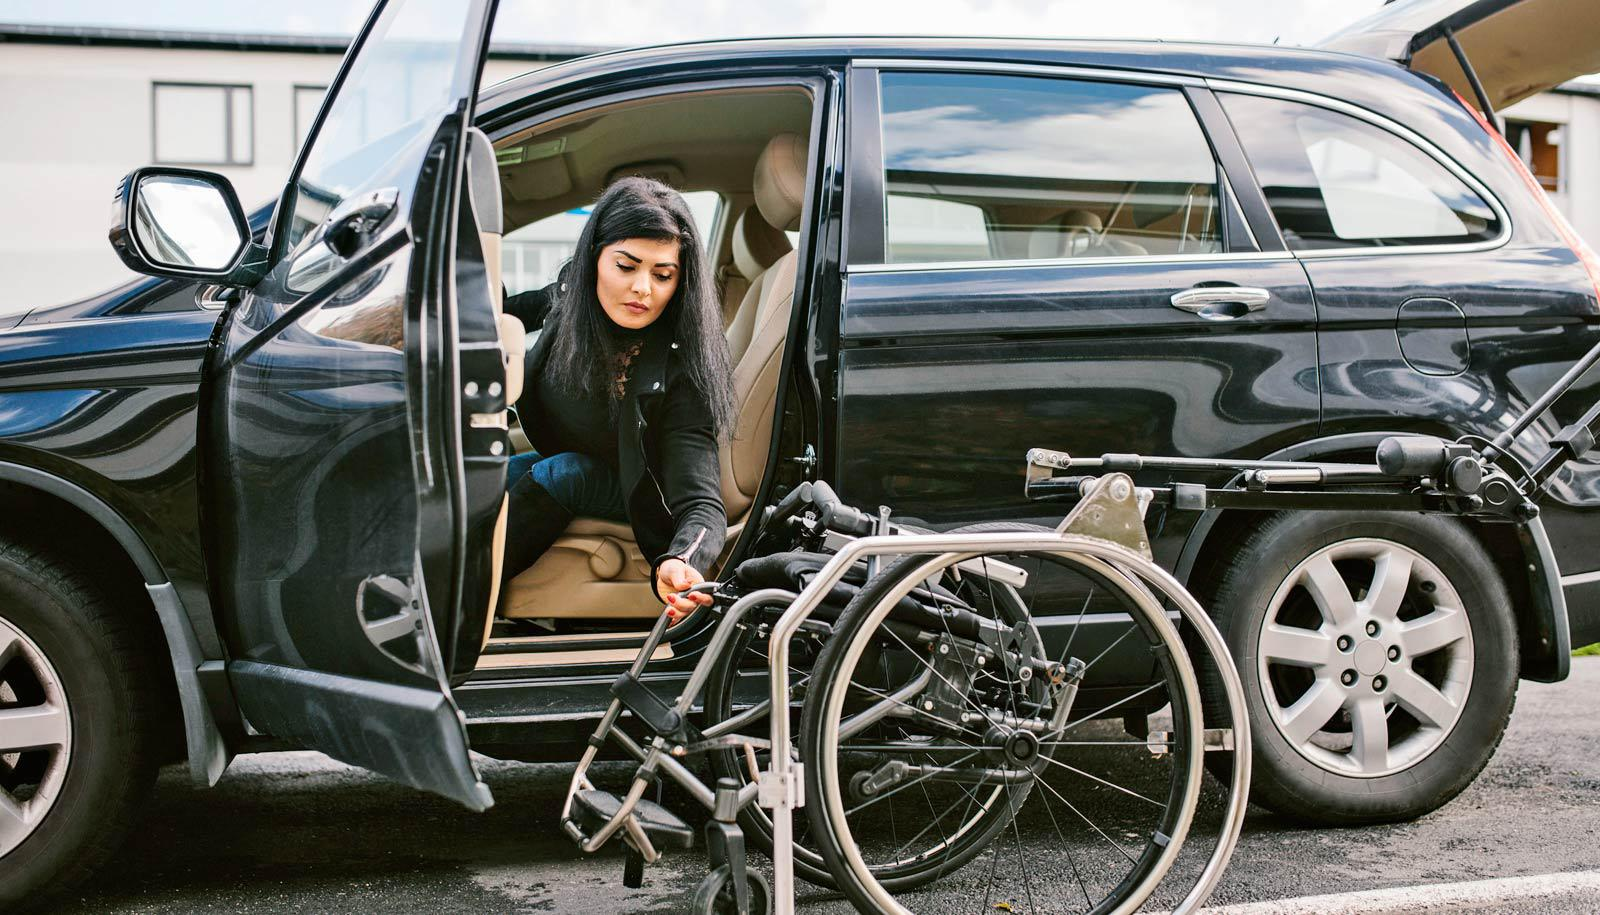 ableism concept - woman with disabilities leans out of car toward wheelchair